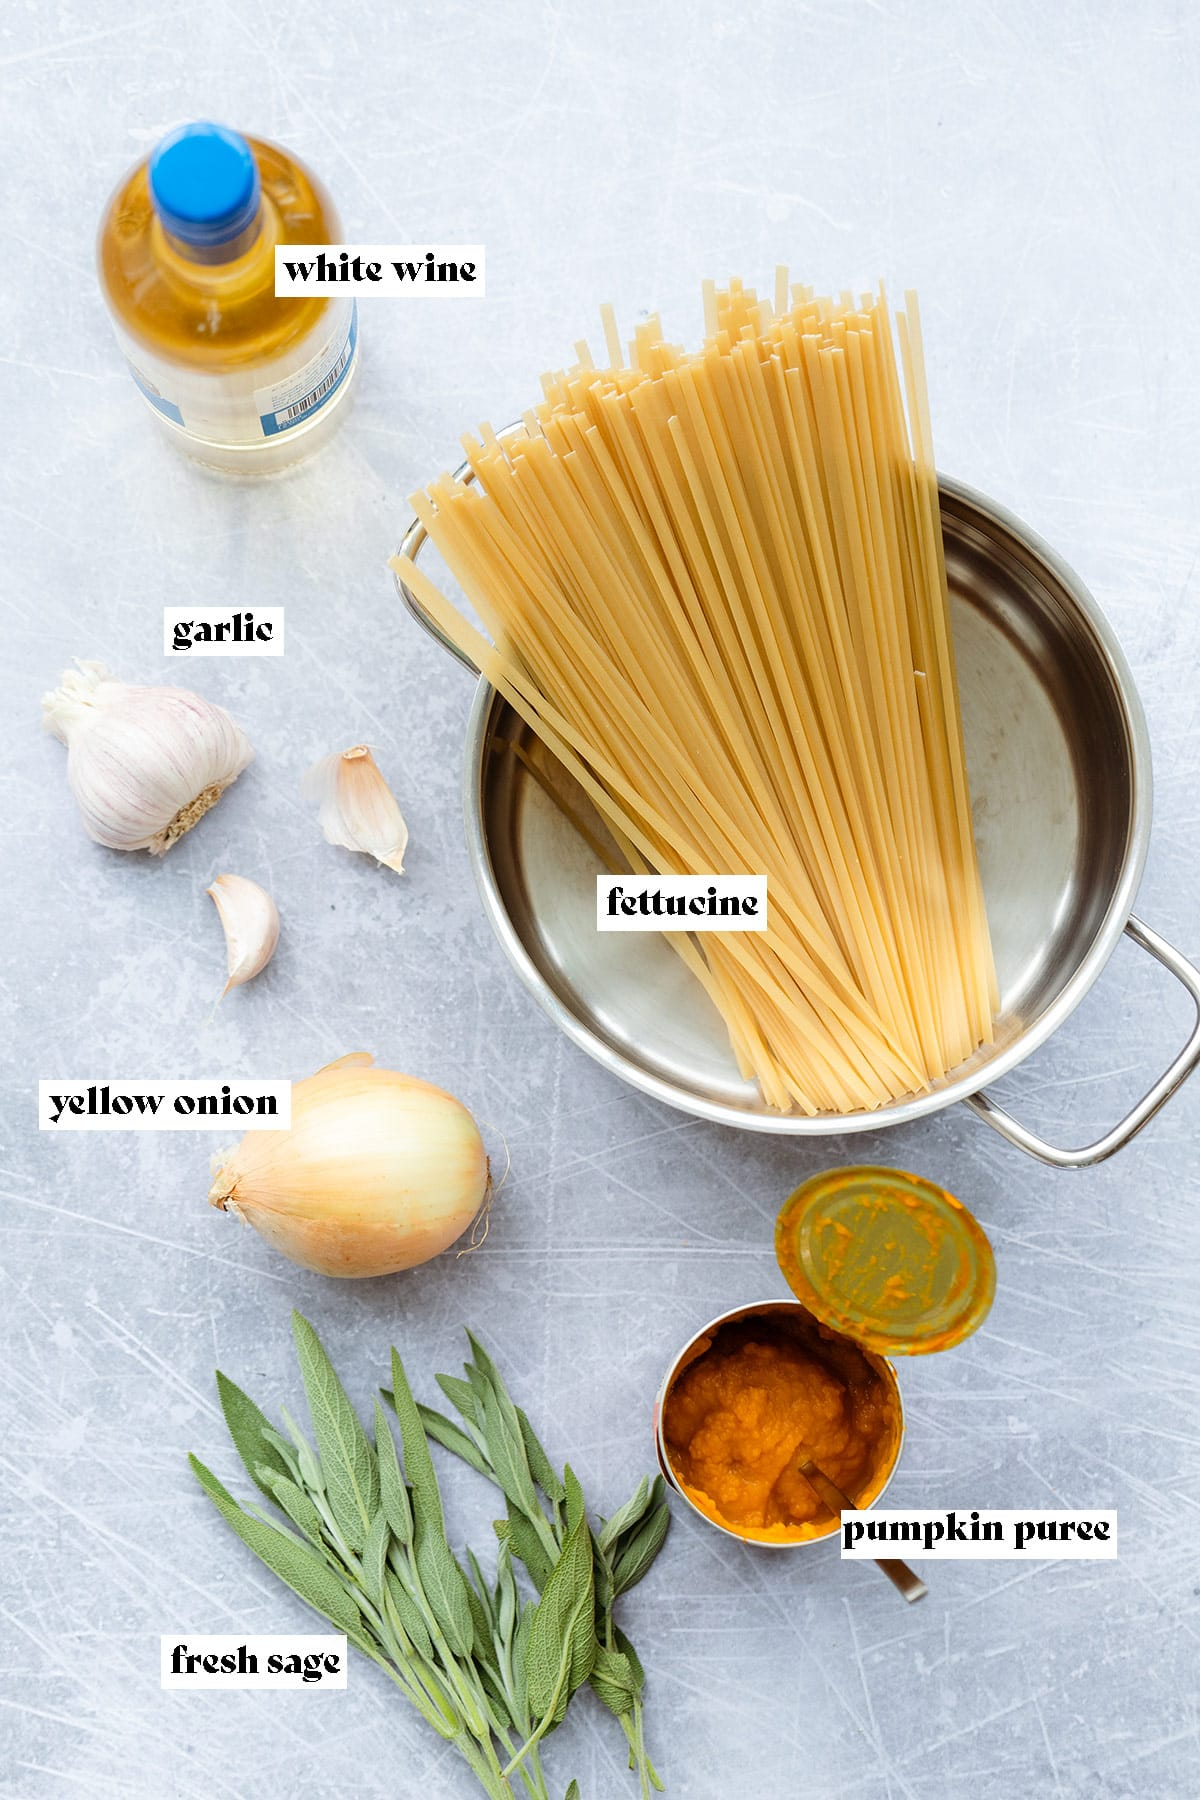 Ingredients for vegan pumpkin pasta laid out on a light metal background.